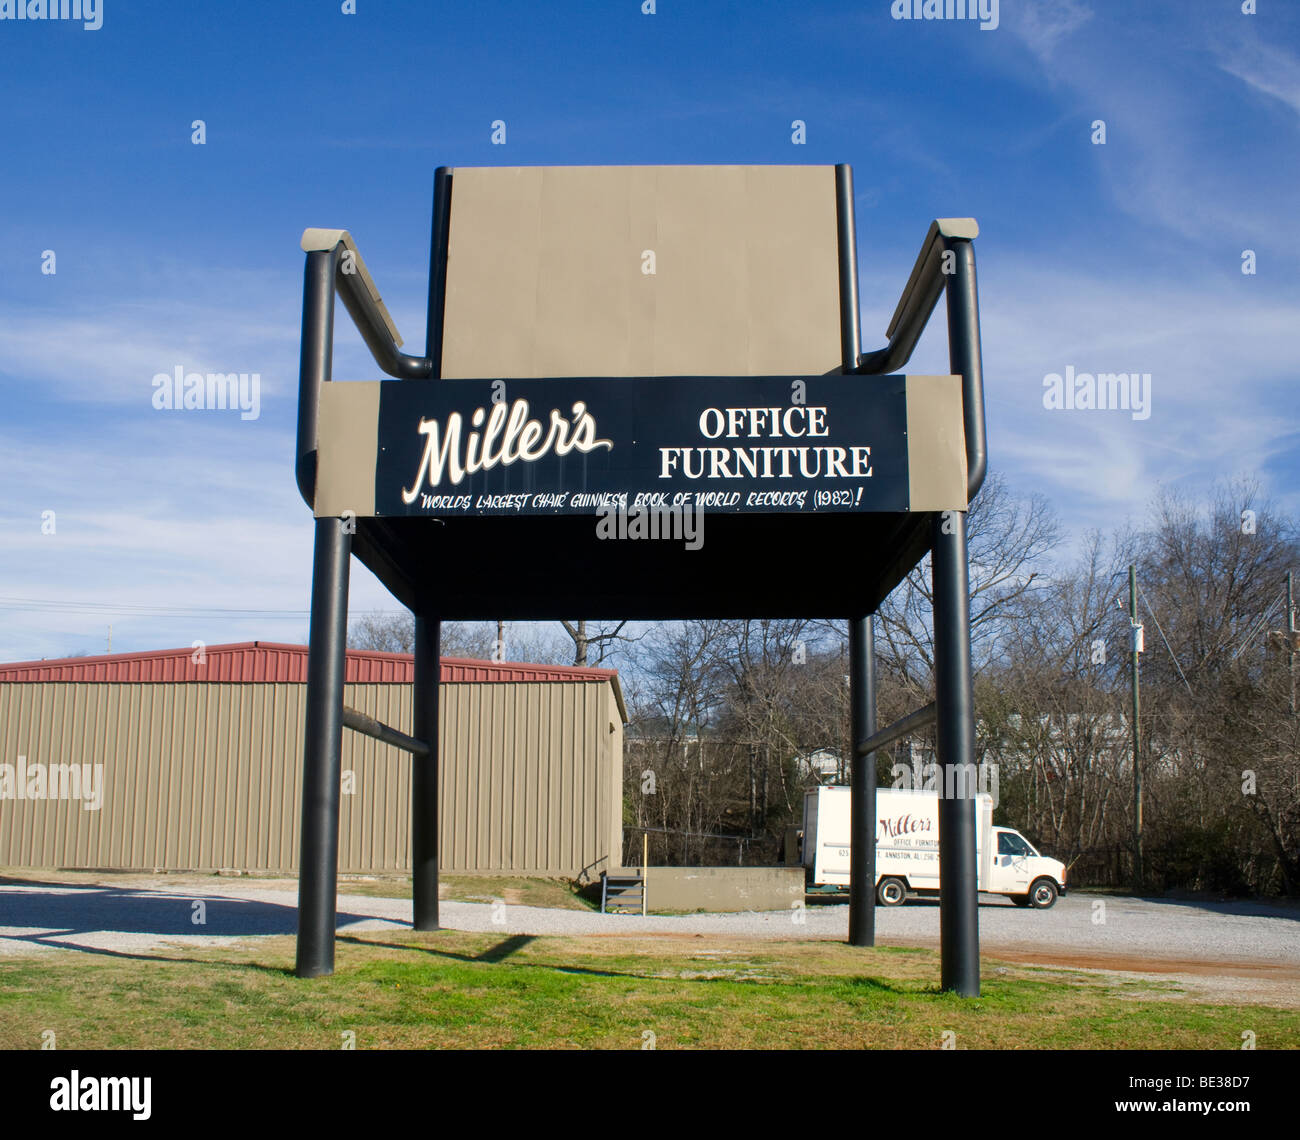 The Worlds Largest Office Chair In Anniston Alabama